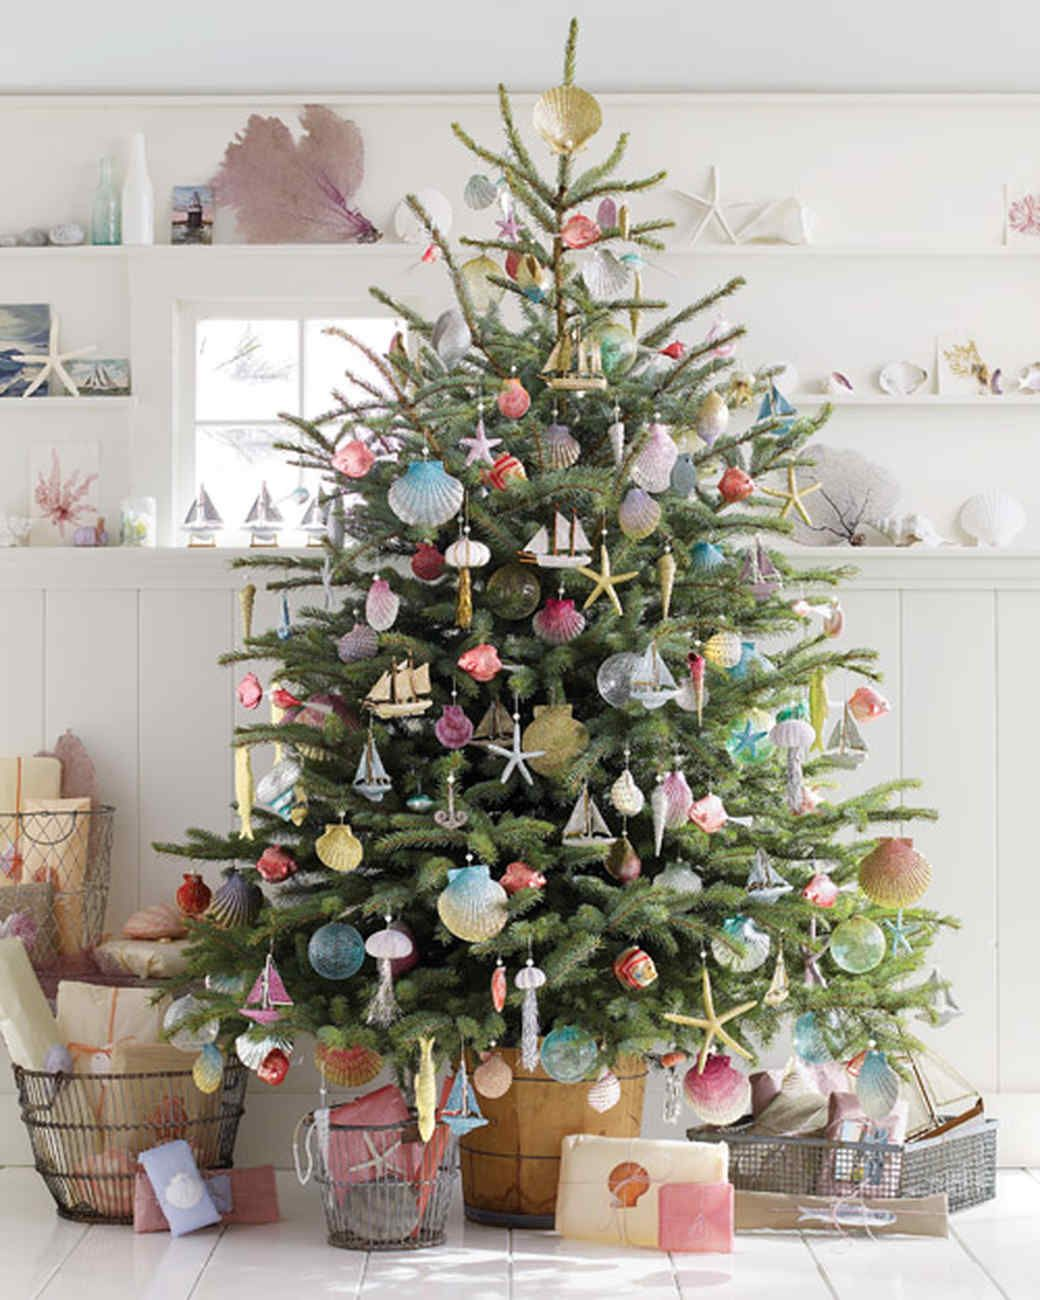 sea inspired tree creative christmas tree decorating ideas martha stewart living channeling childhood summers spent on cape cod crafts director hannah - Martha Stewart Christmas Tree Decorations